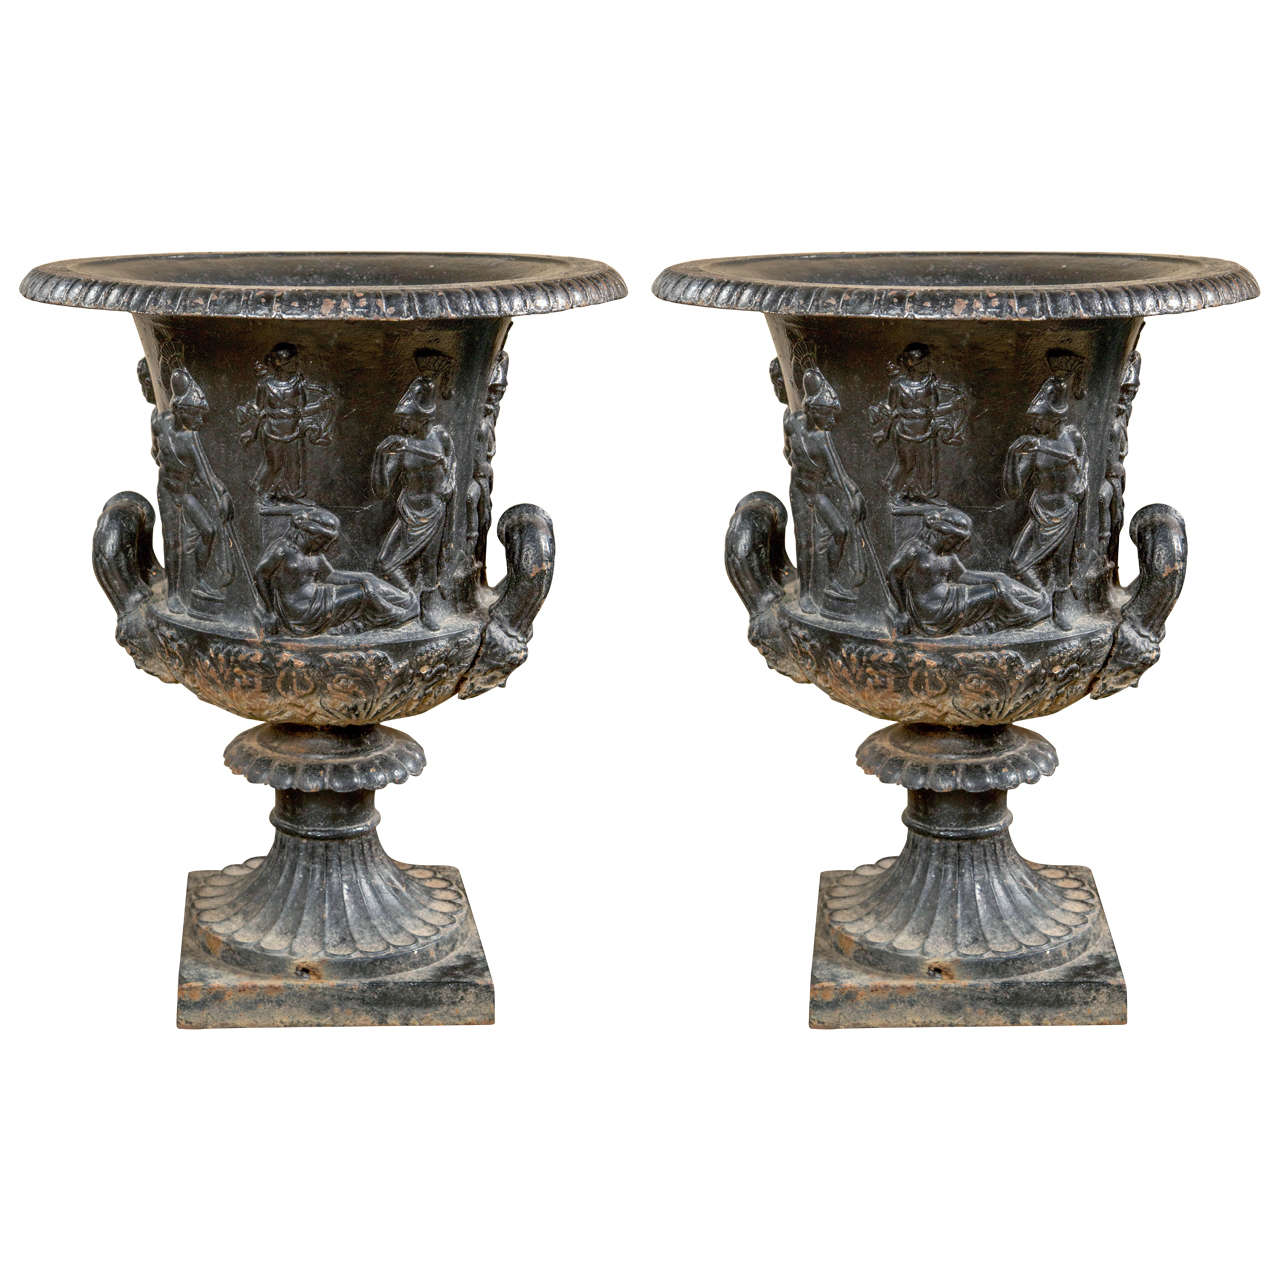 Pair of 19th Century Continental Cast Iron Garden Urns For Sale at